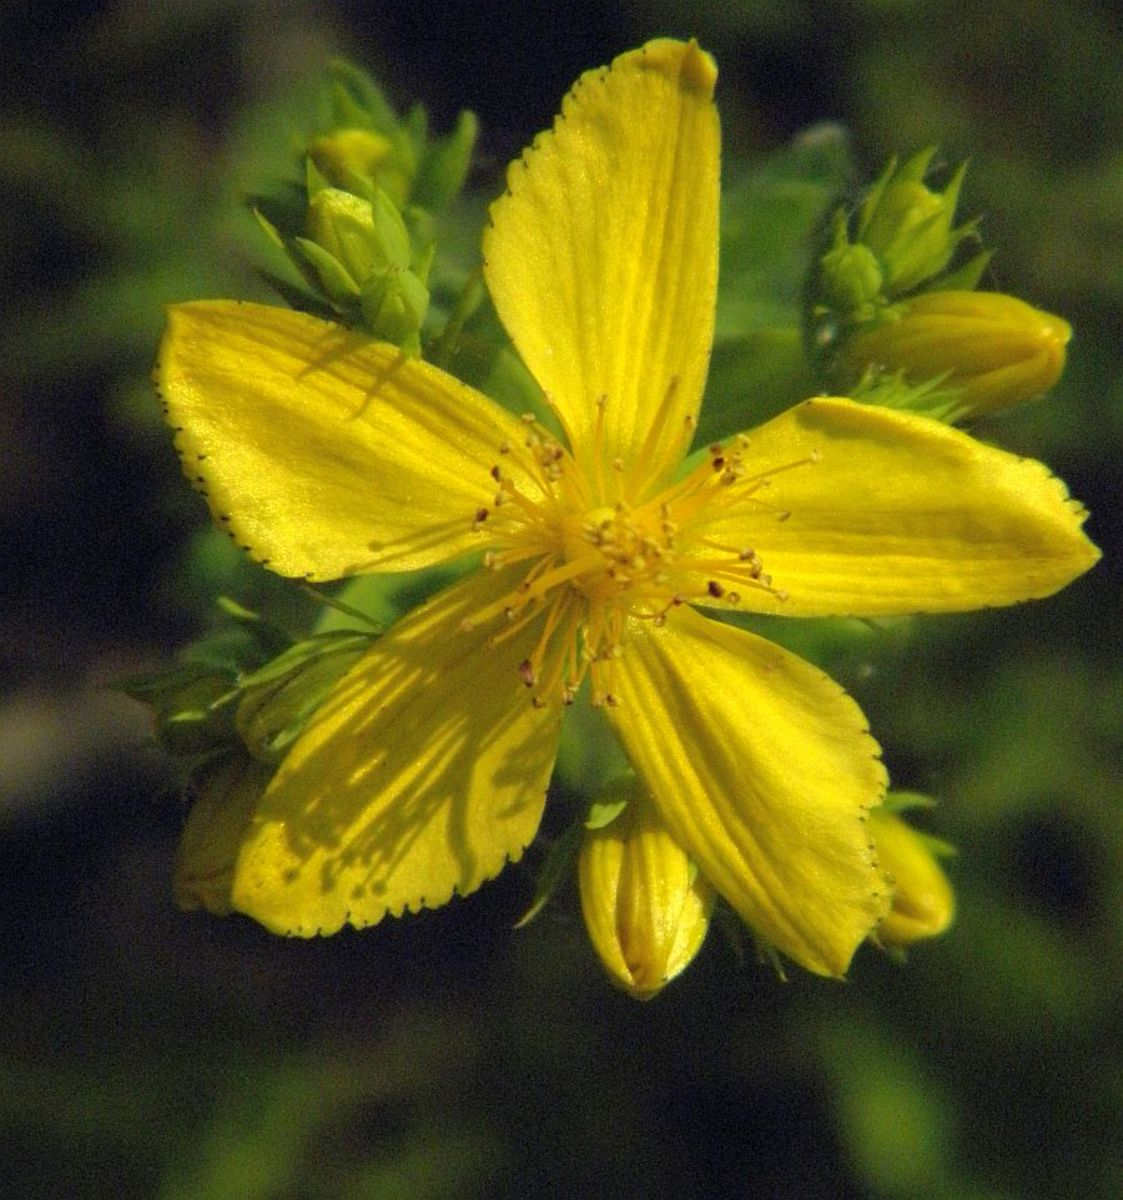 St. John's Wort contains hypericin, which acts as a natural antiviral against herpes.